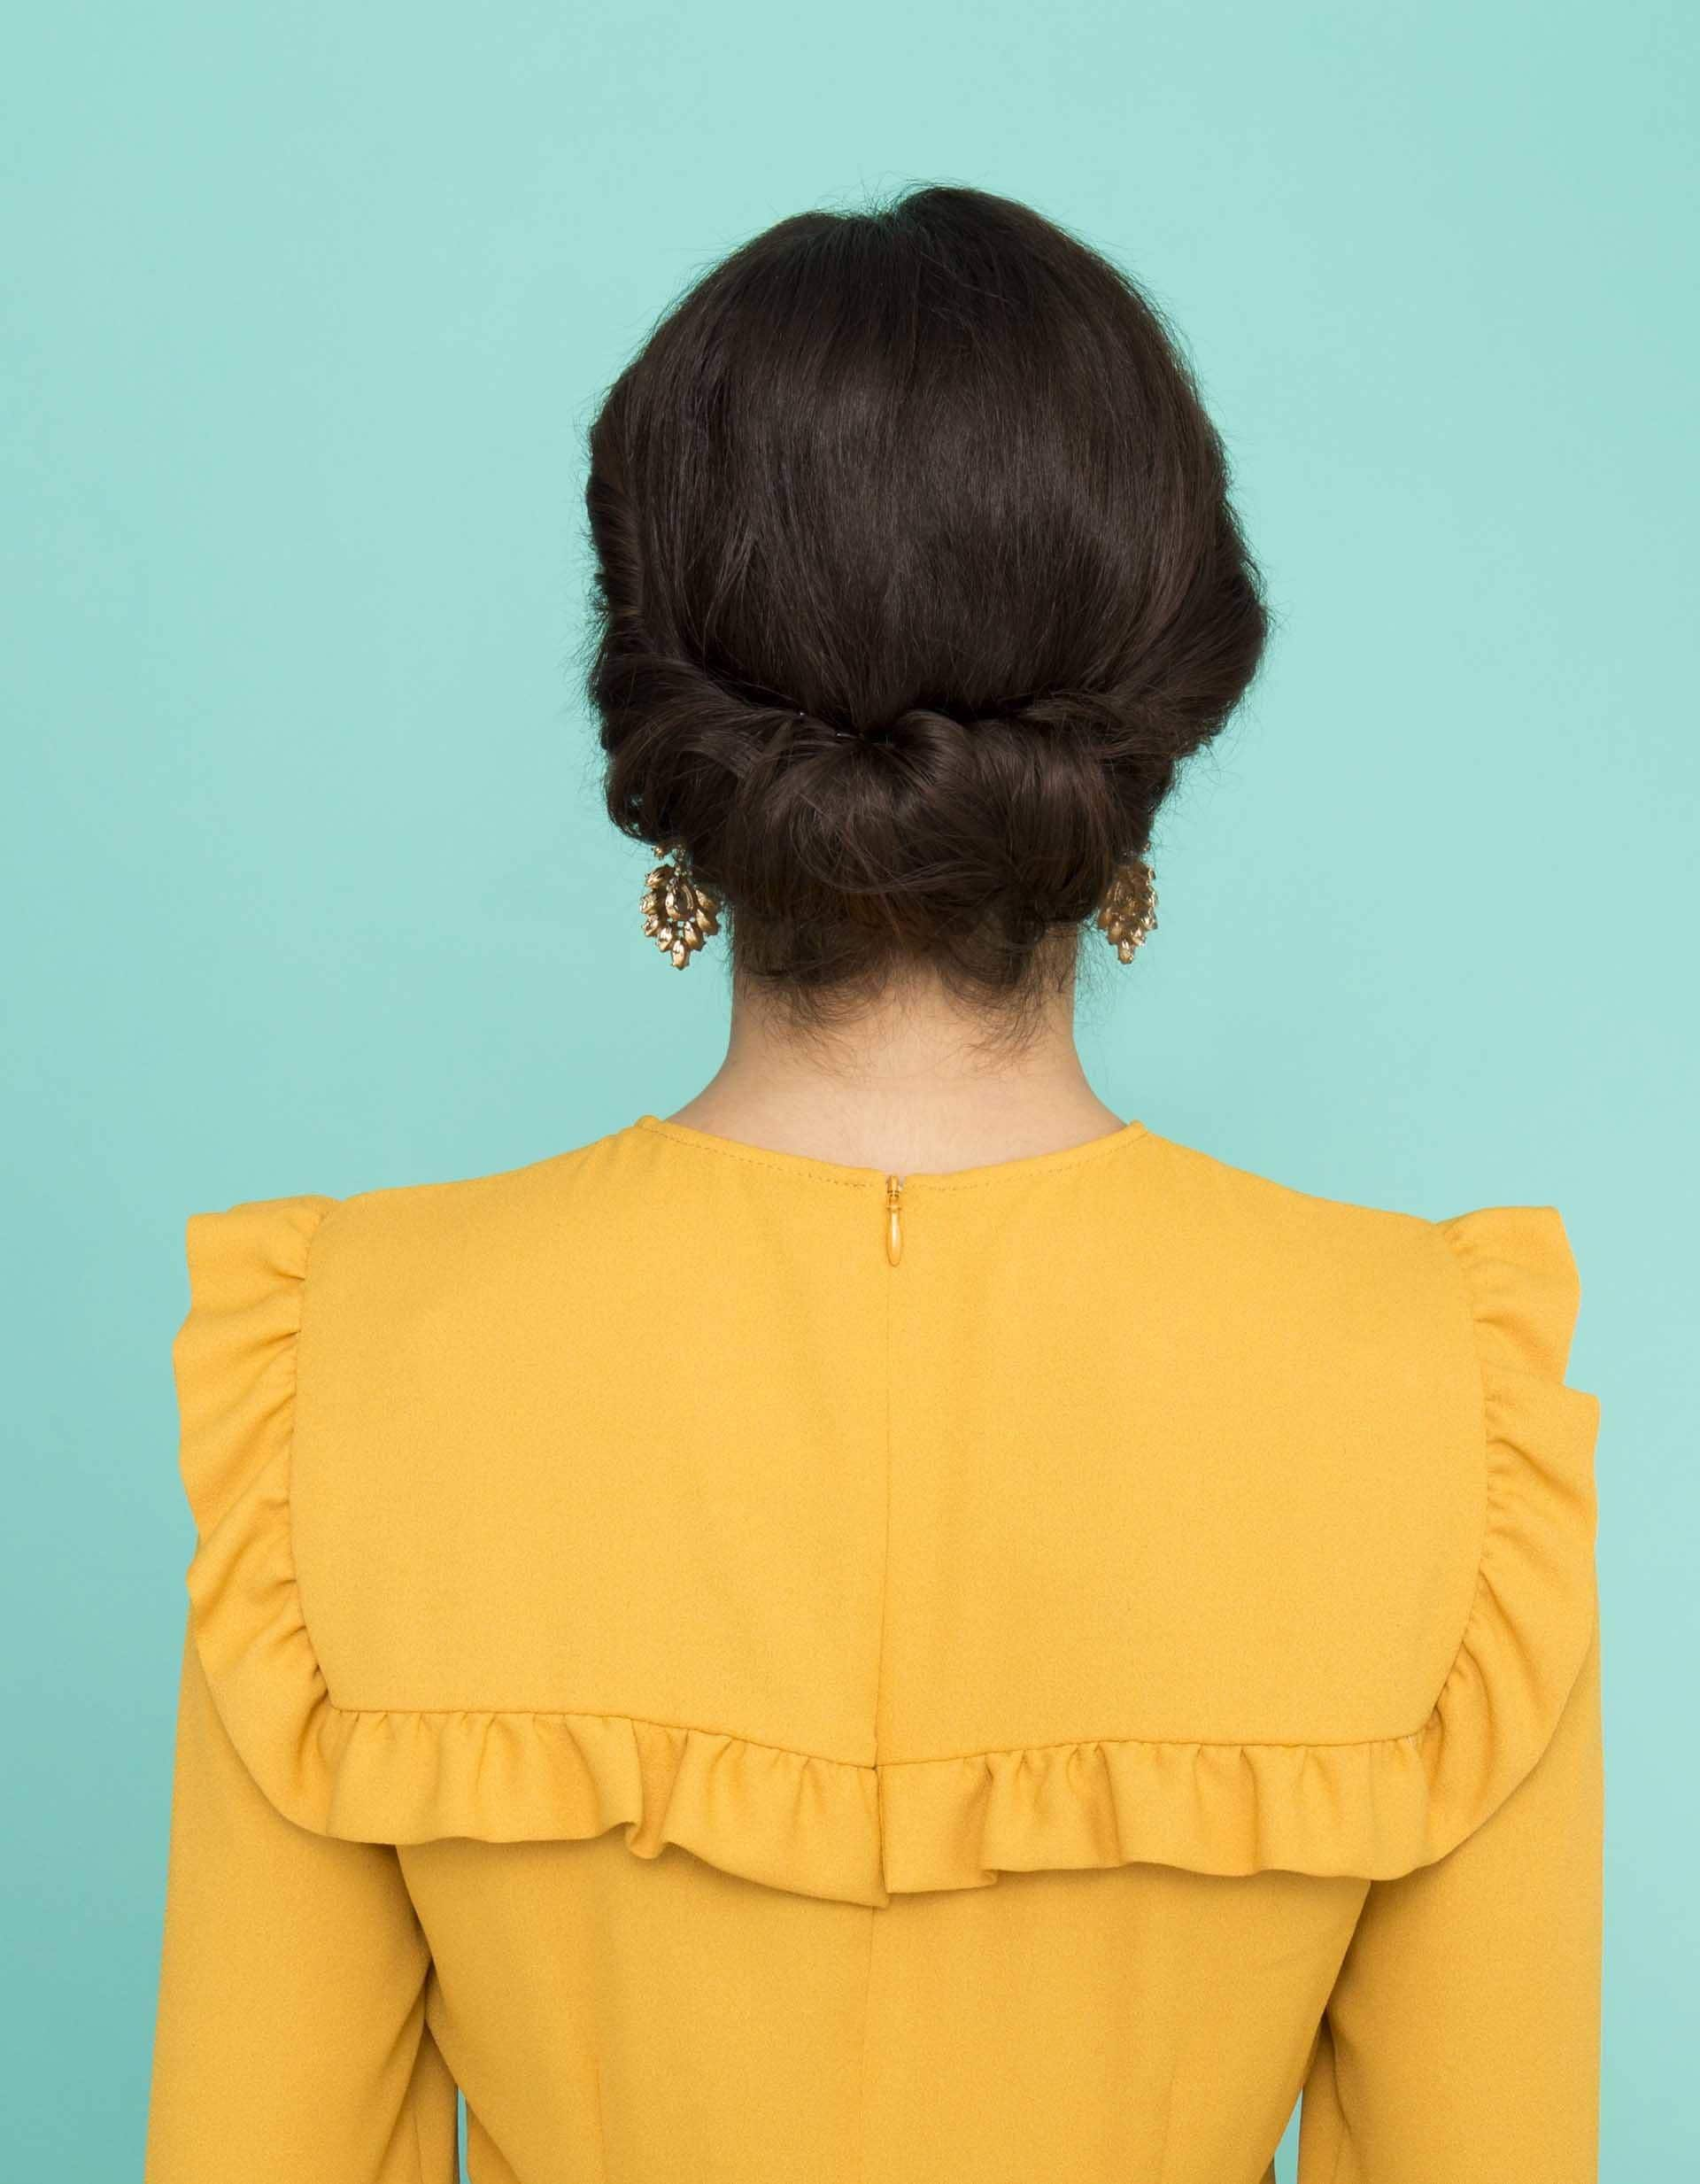 prom hairstyles for medium hair: dark brown haired model showing off gibson tuck hairstyle from behind while wearing bright yellow dress